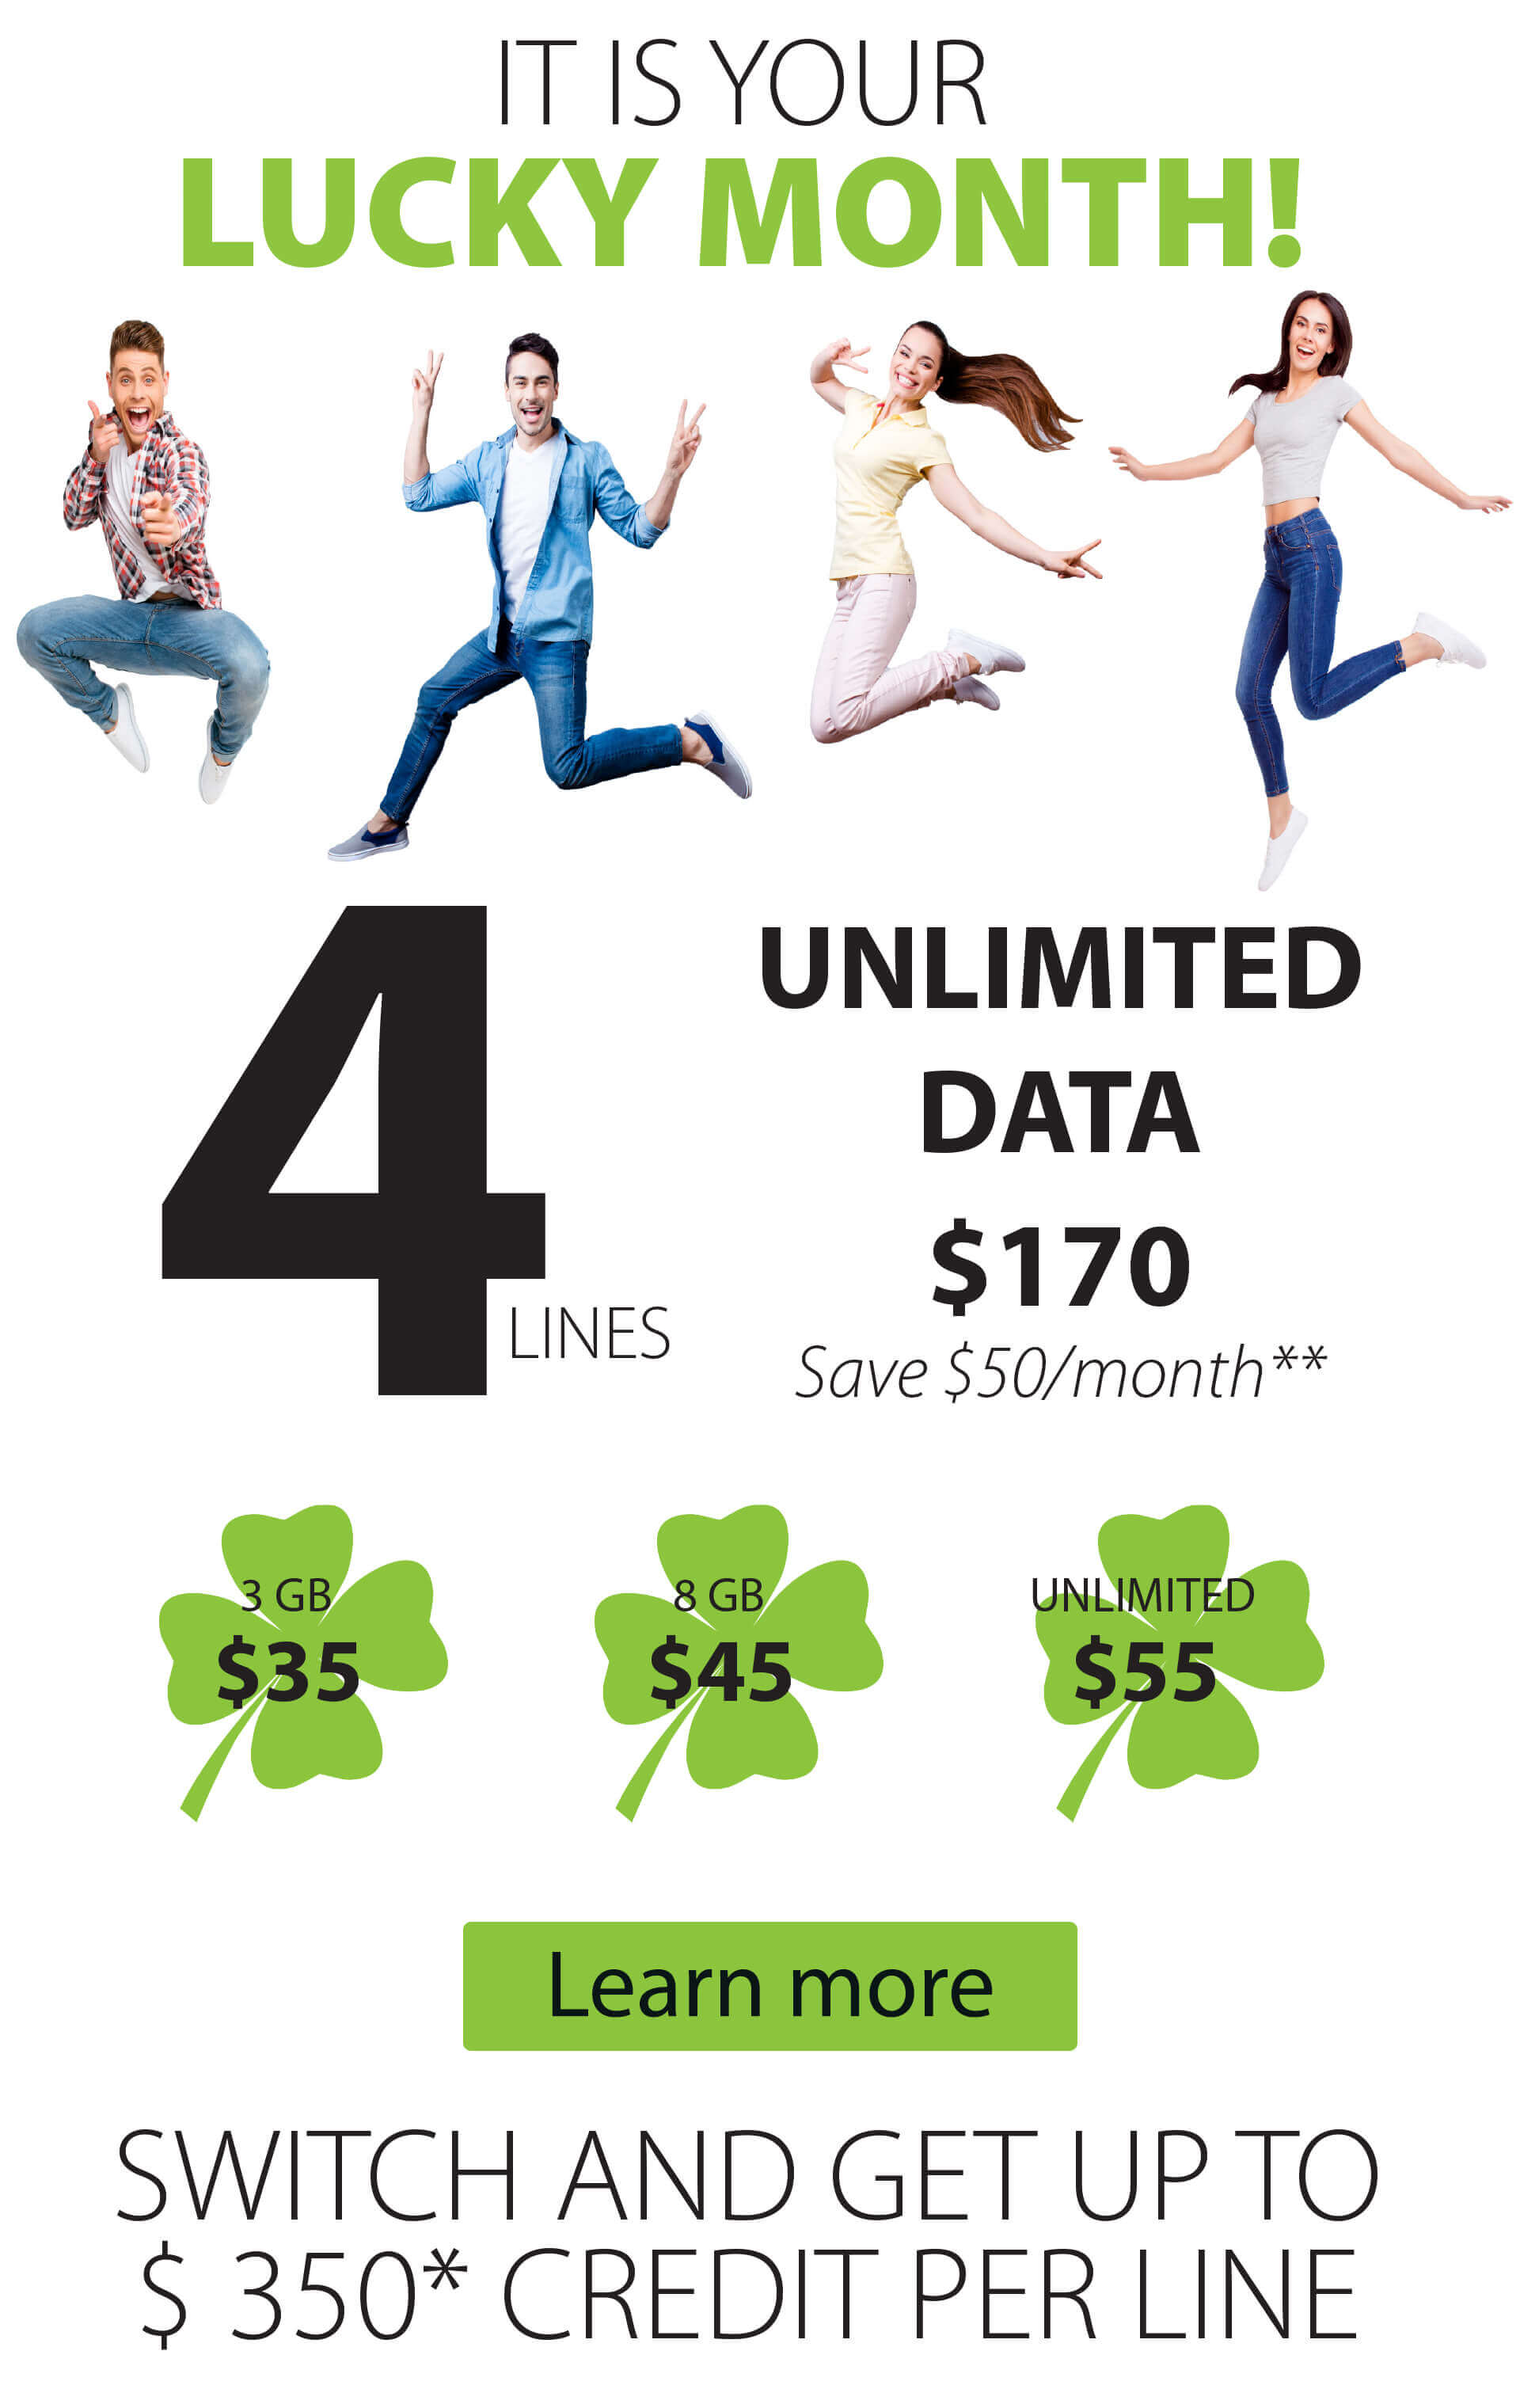 People happy about unlimited data plan